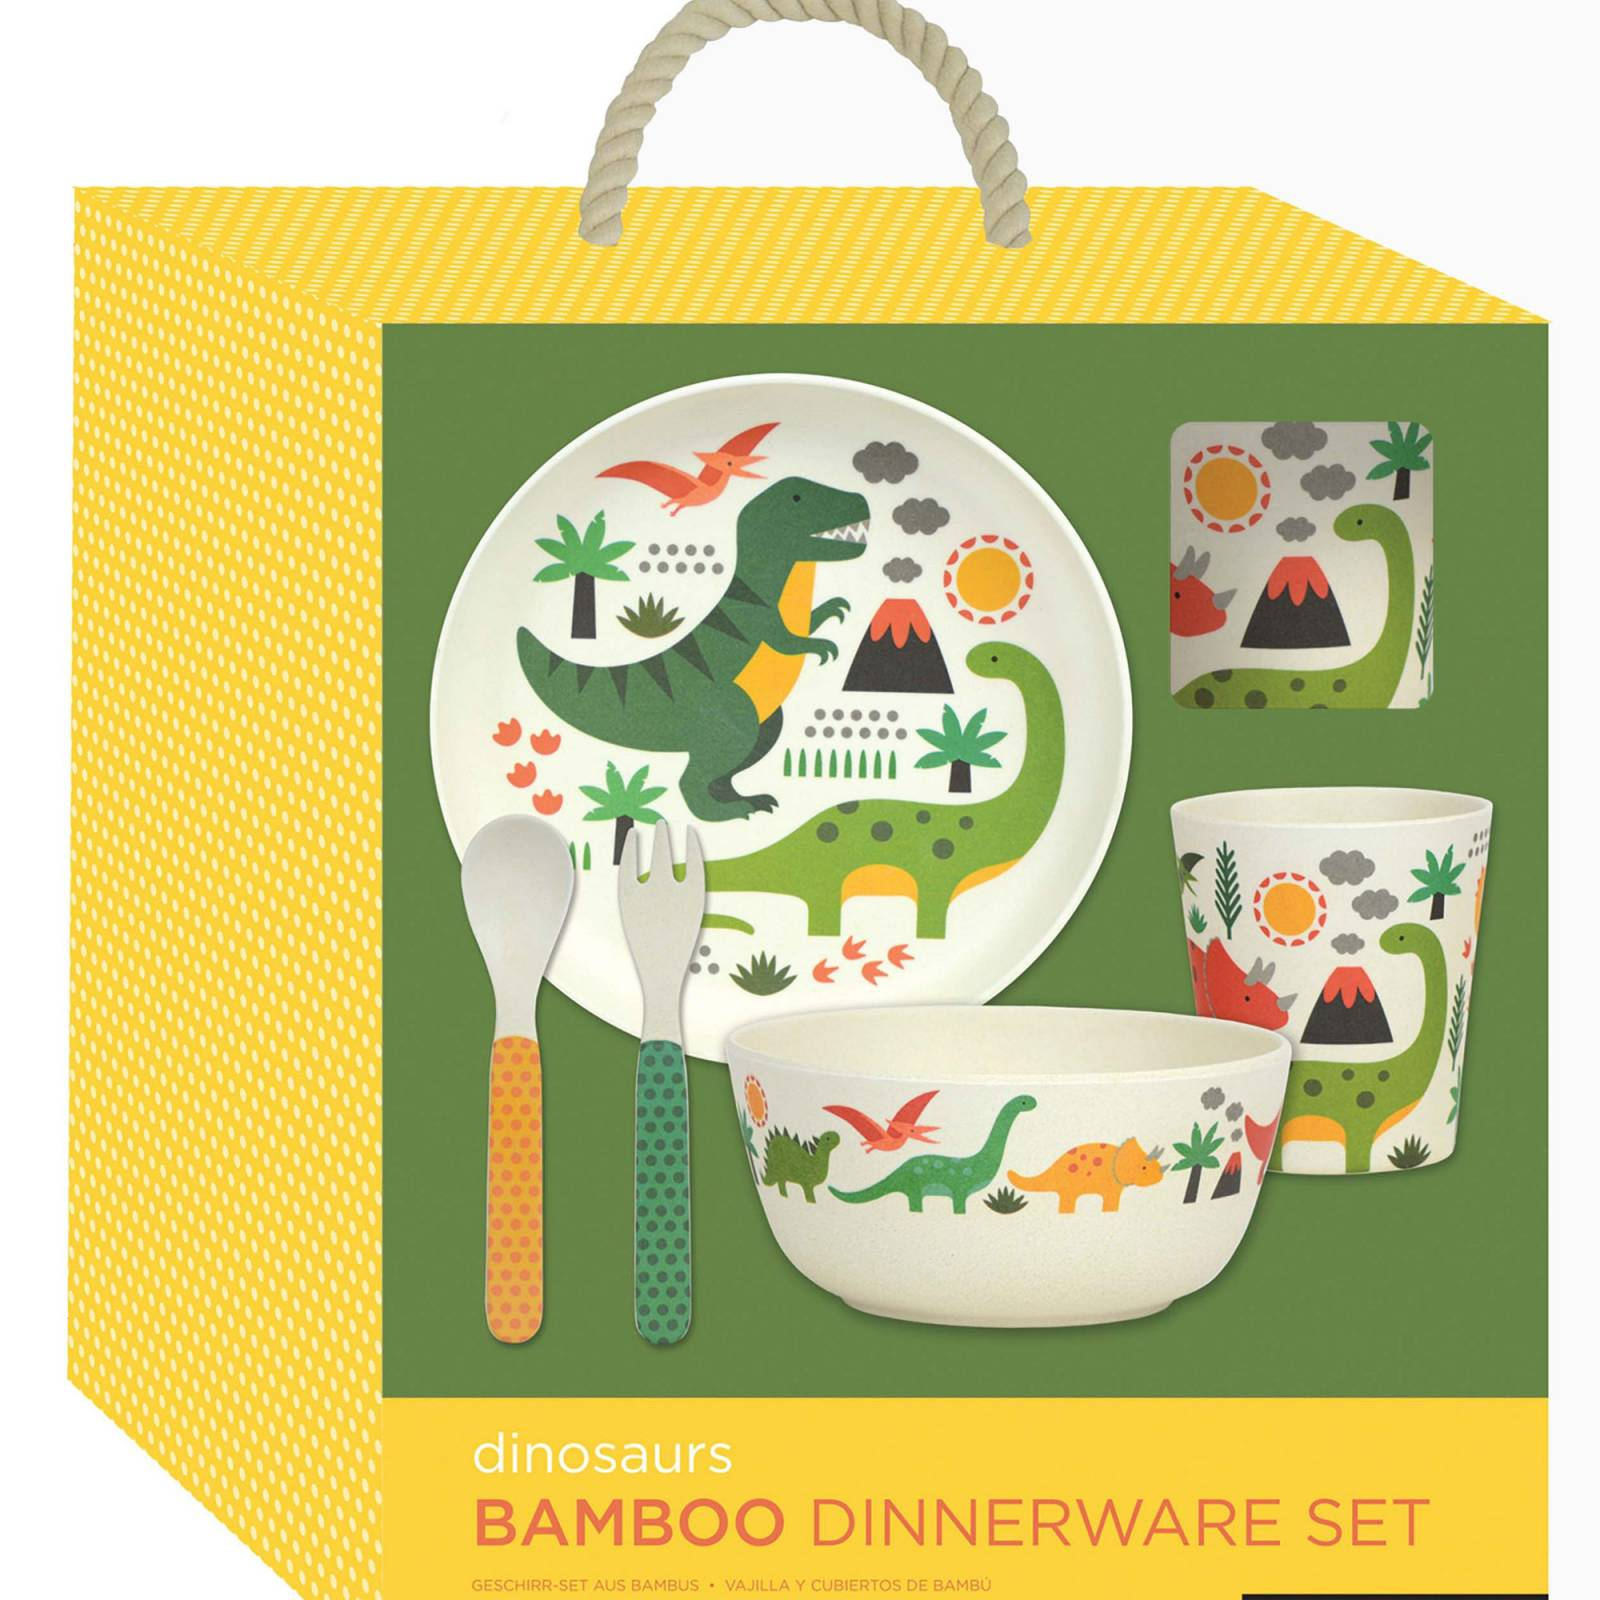 Children's Dinosaur Bamboo Dinnerware Set  By Petit Collage